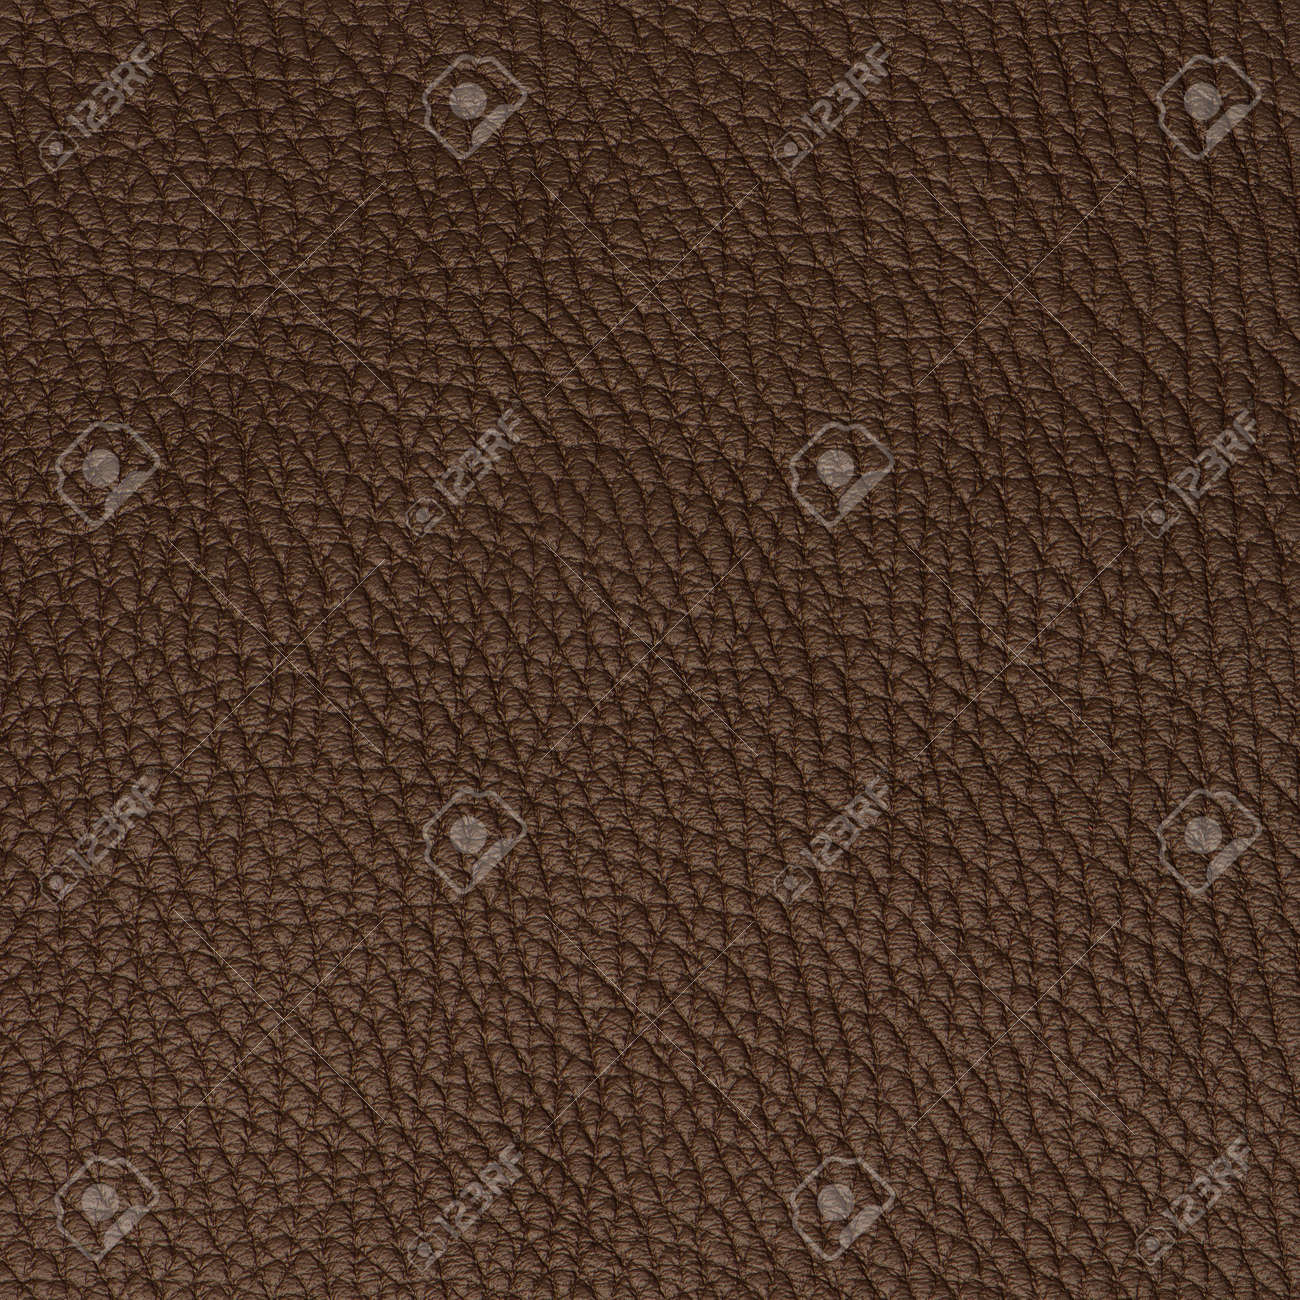 Brown leather texture closeup background. - 16291344